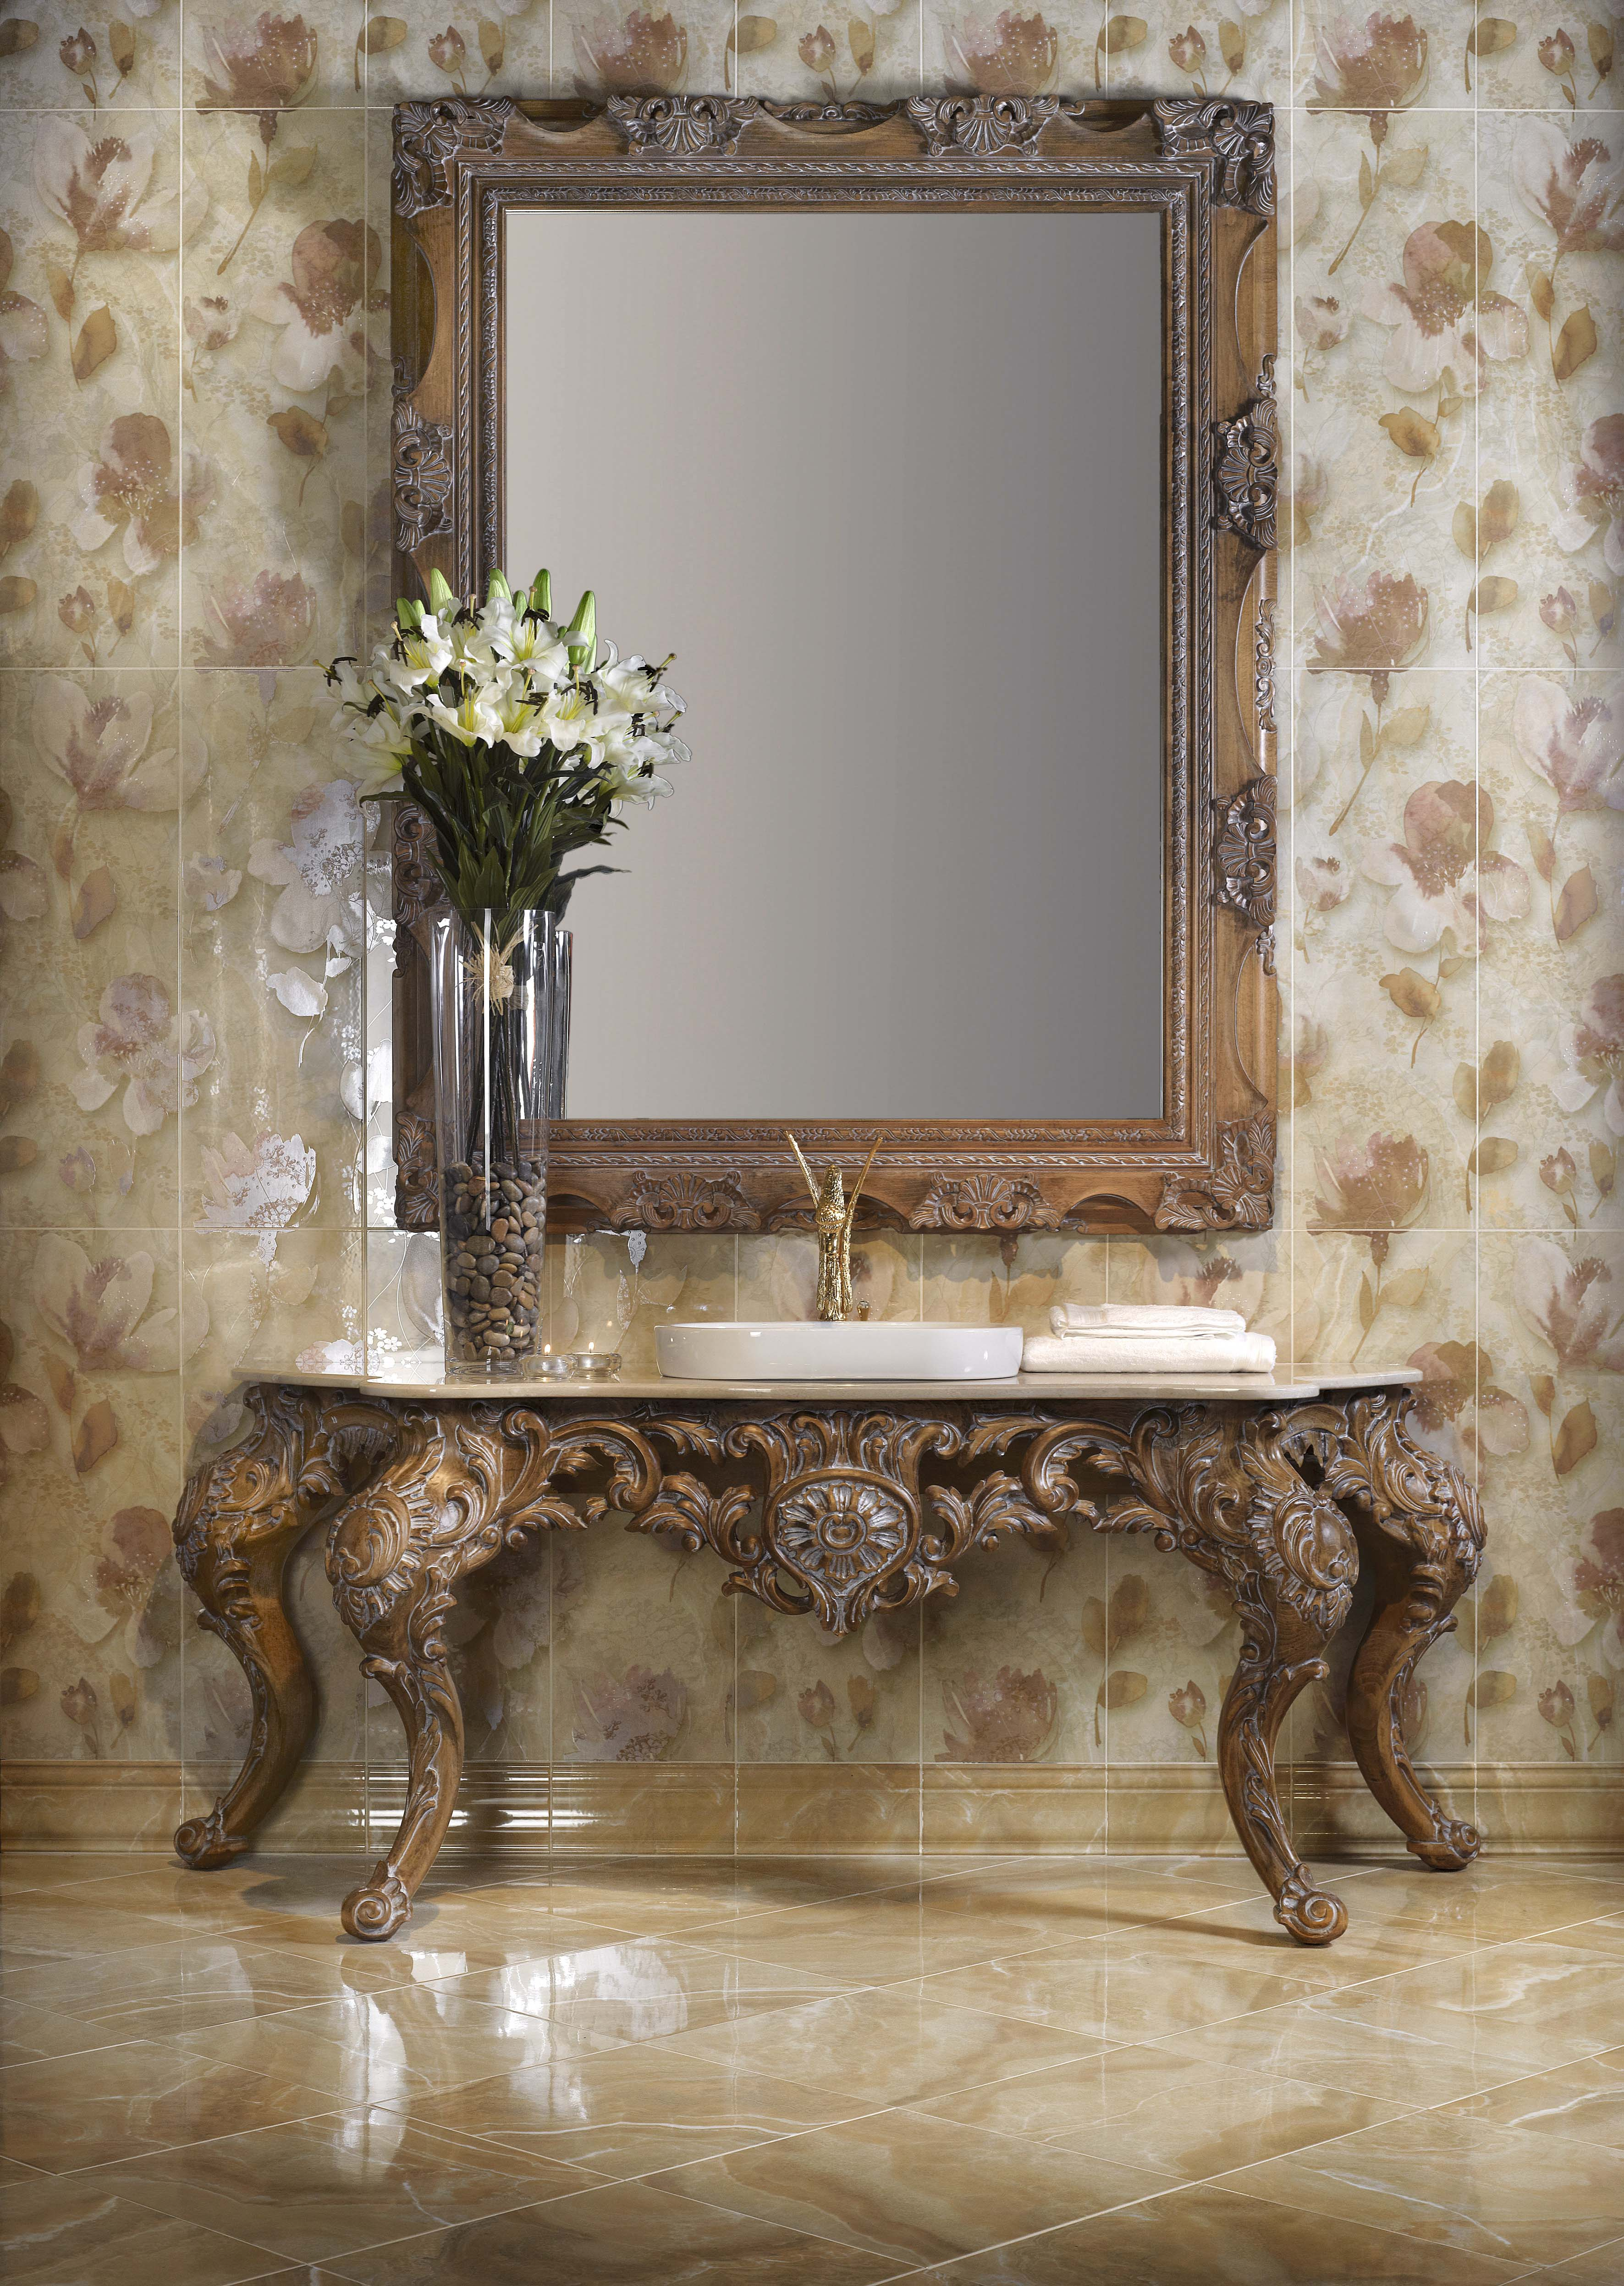 premier bathrooms, cloakroom suites, heritage bathrooms